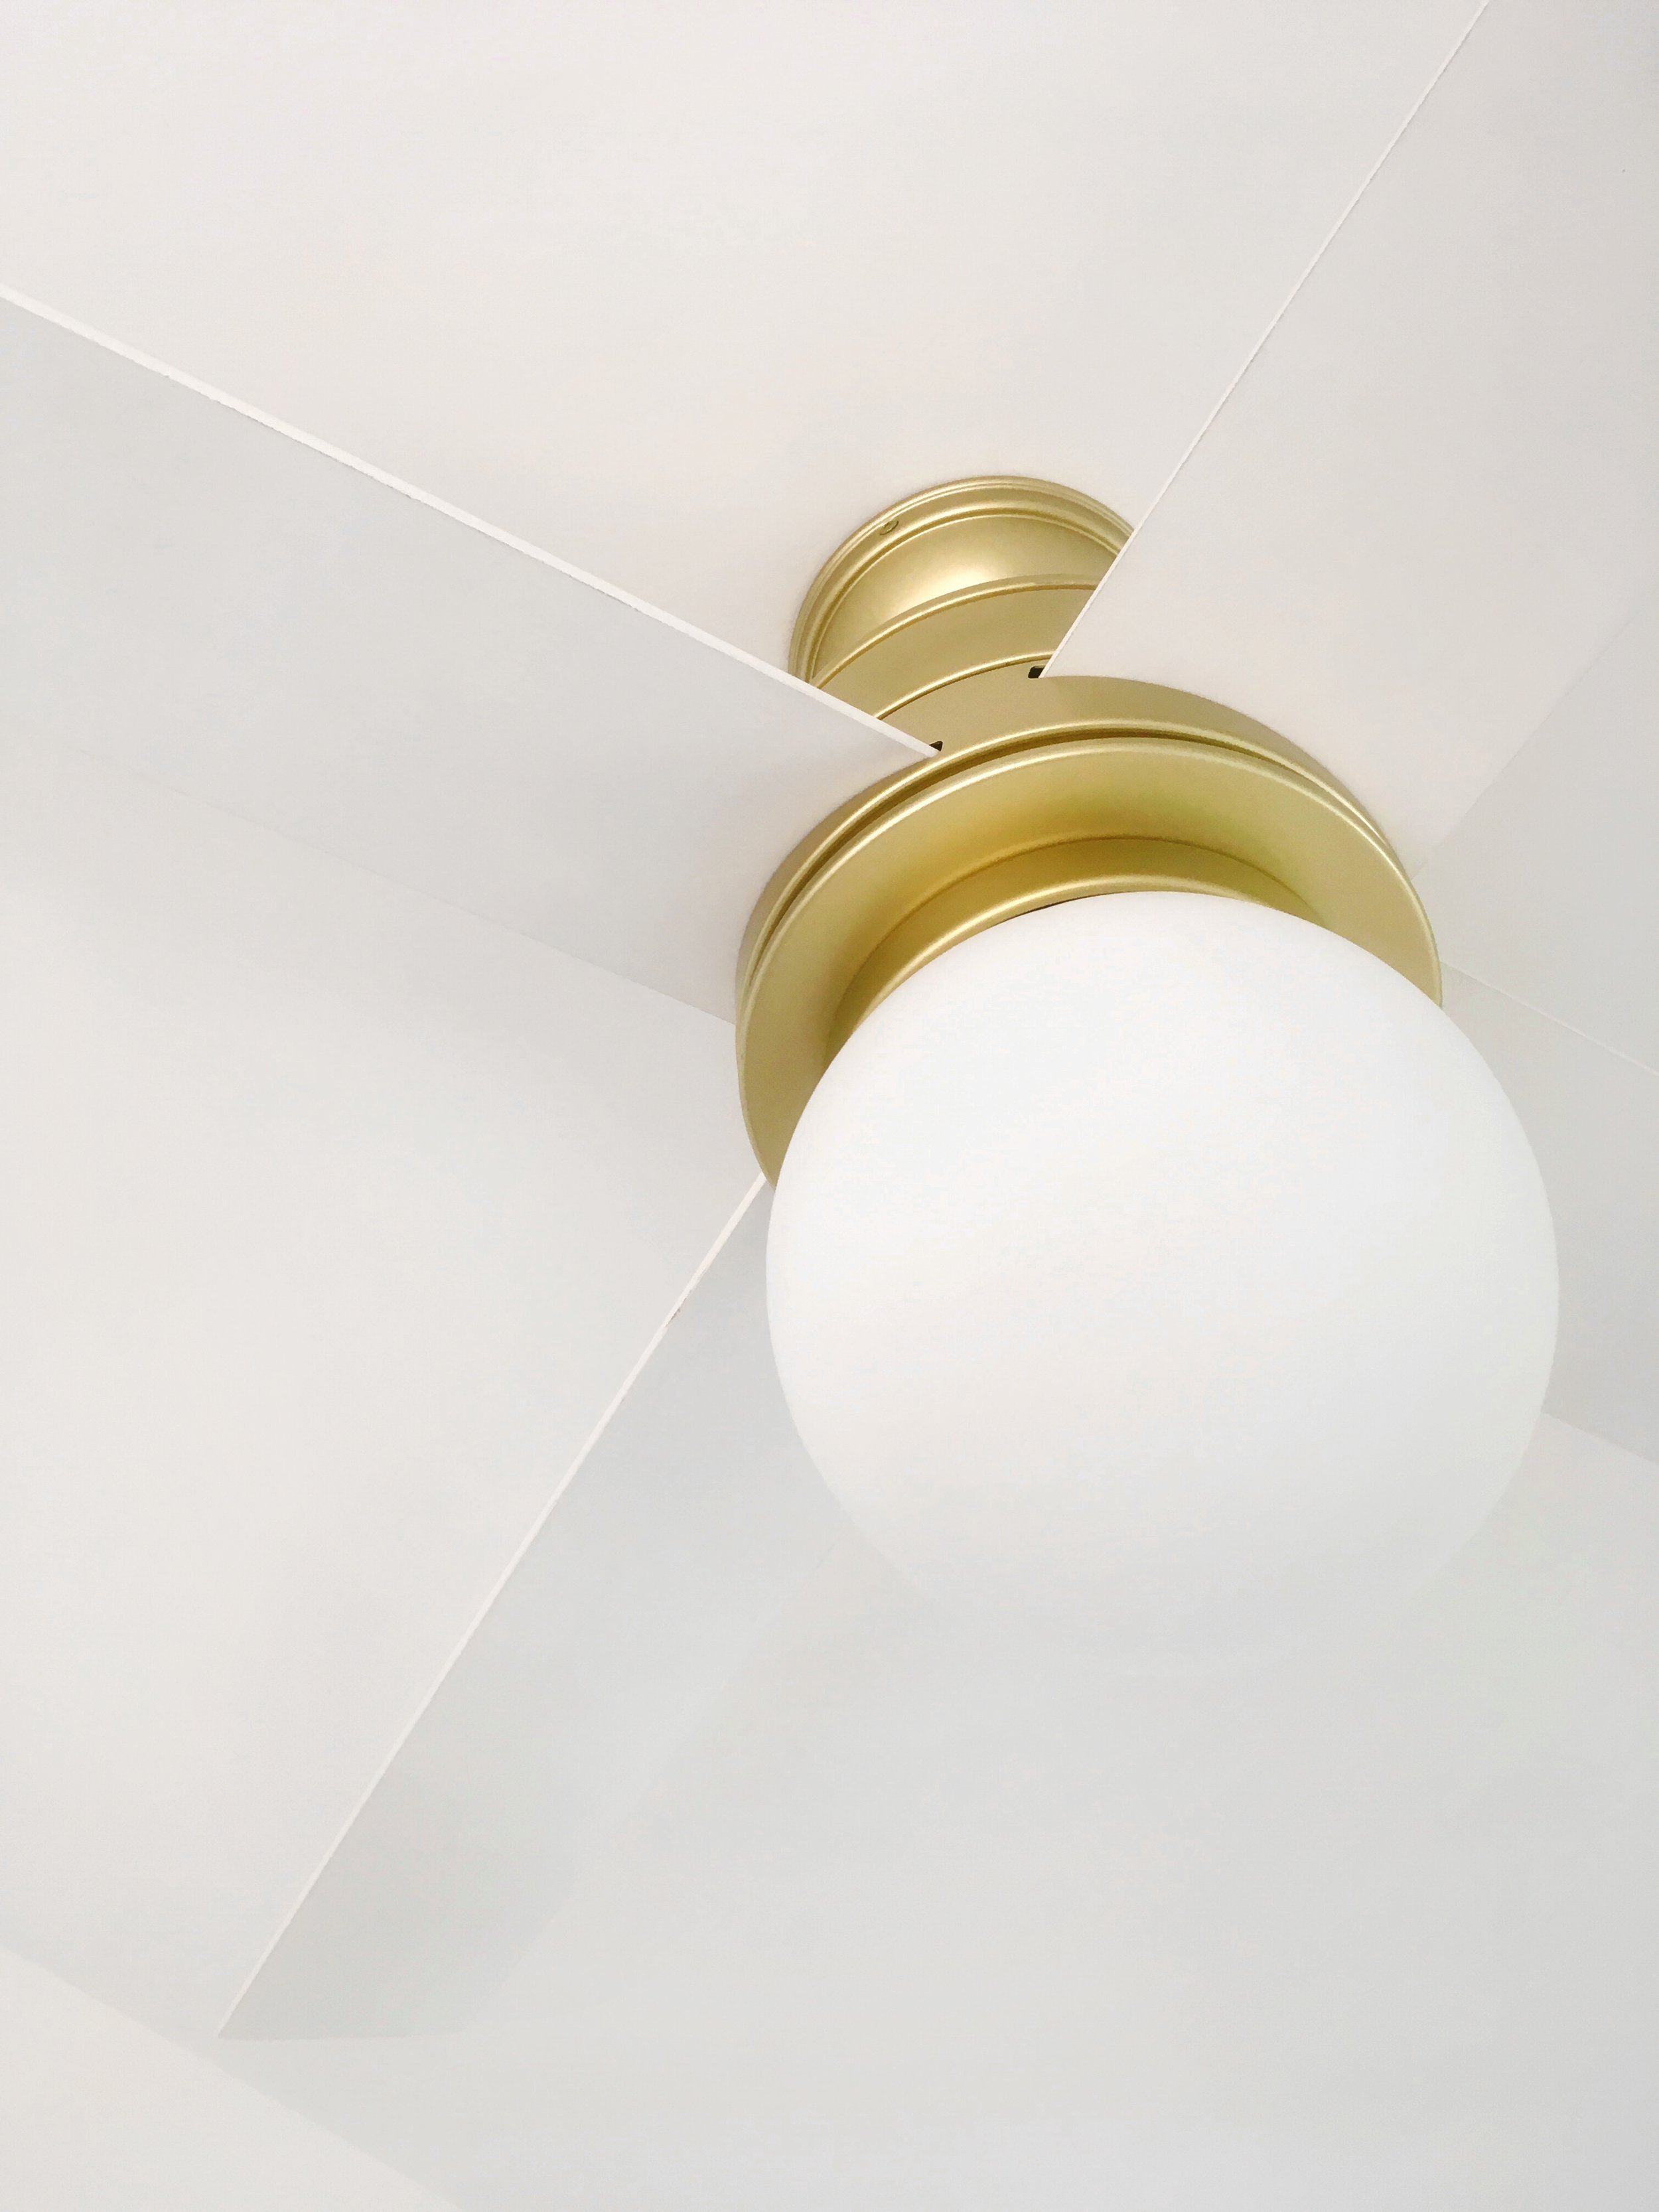 A vintage-inspired globe light with a modern touch.